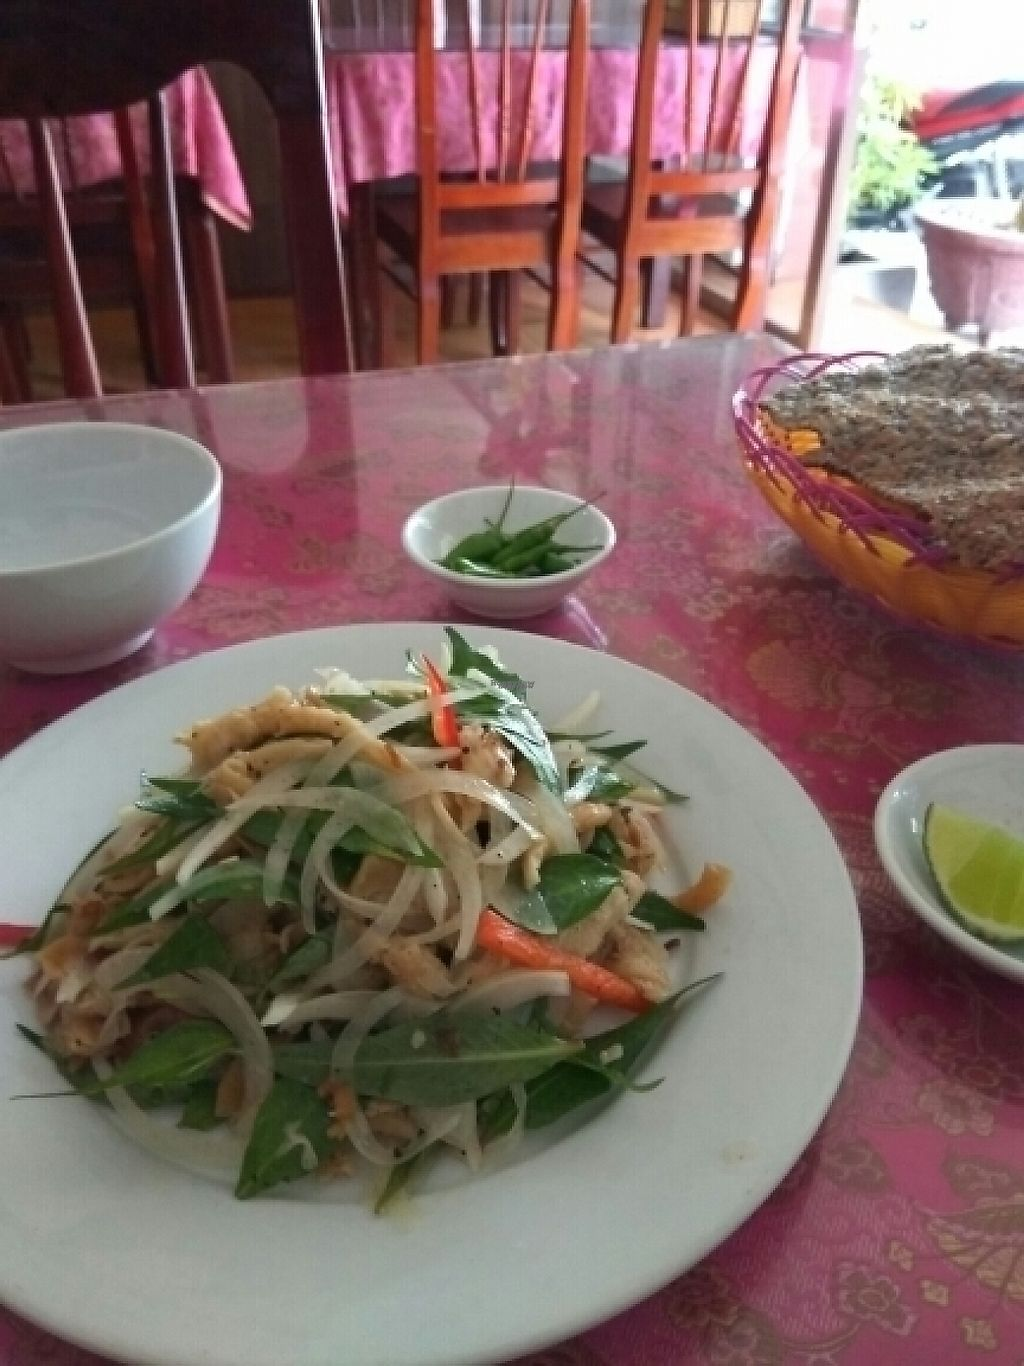 """Photo of Co Tam  by <a href=""""/members/profile/MrGee"""">MrGee</a> <br/>mock chicken salad <br/> November 17, 2016  - <a href='/contact/abuse/image/16292/191157'>Report</a>"""